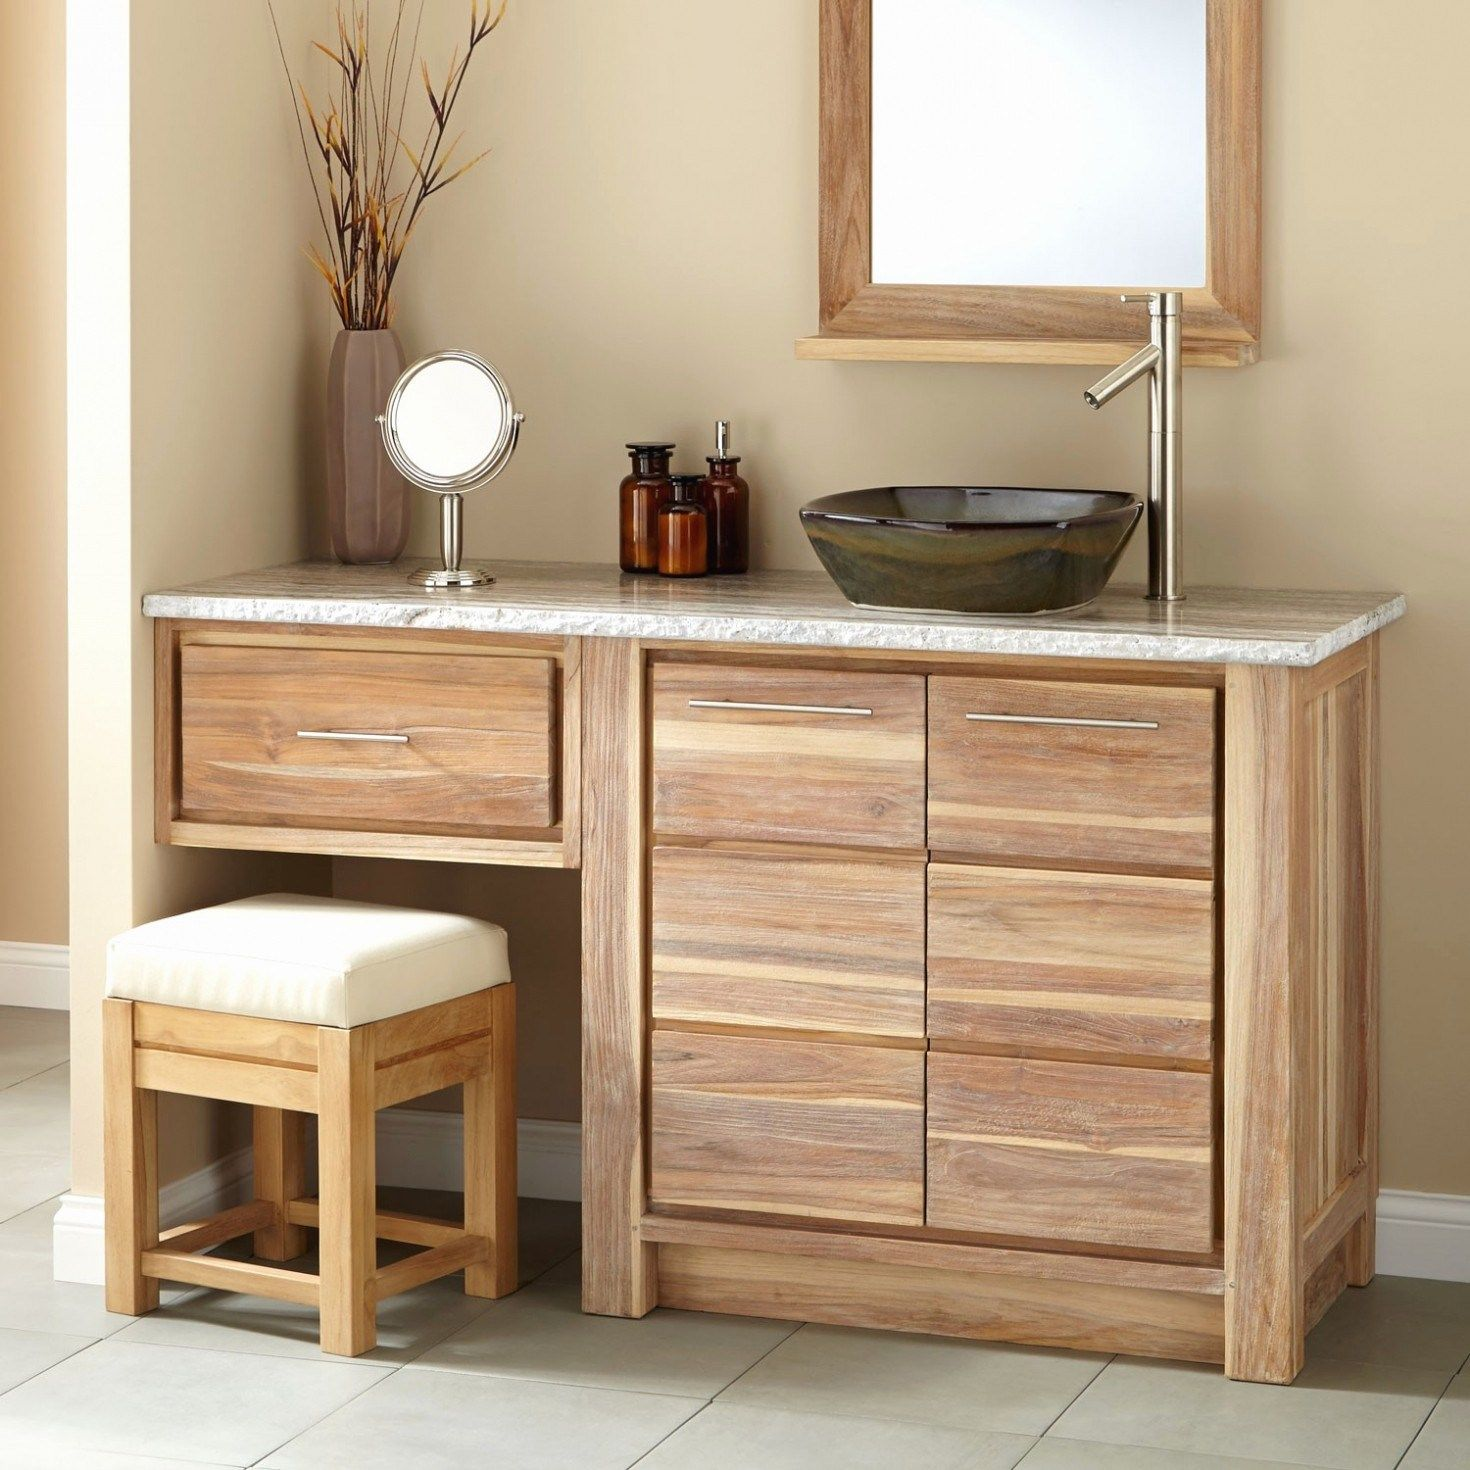 Bathroom Vanities With Sitting Area More Click Bathroom Vanities With Sitting Area Log Homes